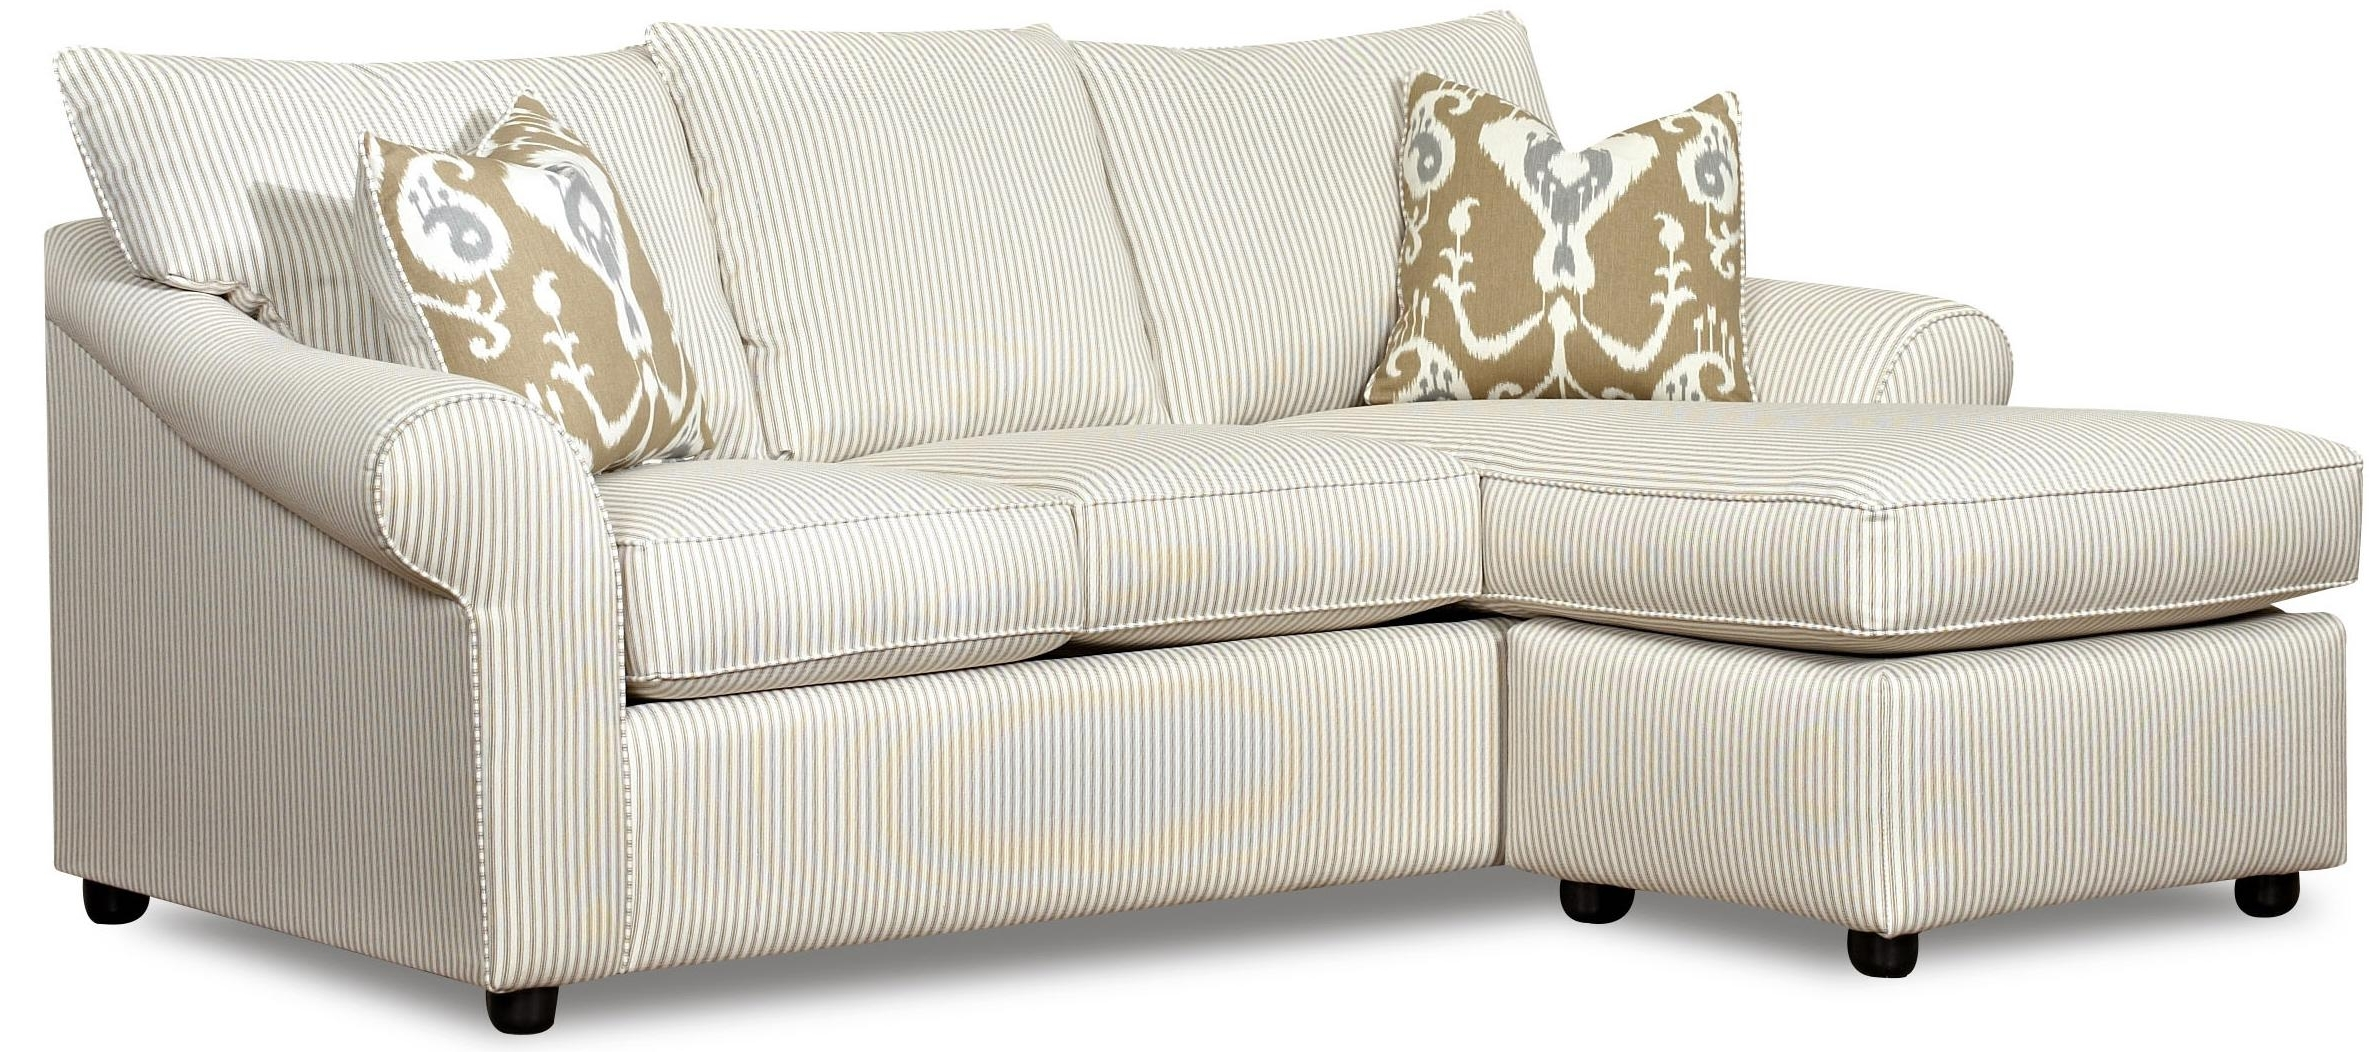 Sofas With Chaise Lounge With Regard To Latest Sofa With Reversible Chaise Loungeklaussner (View 6 of 15)